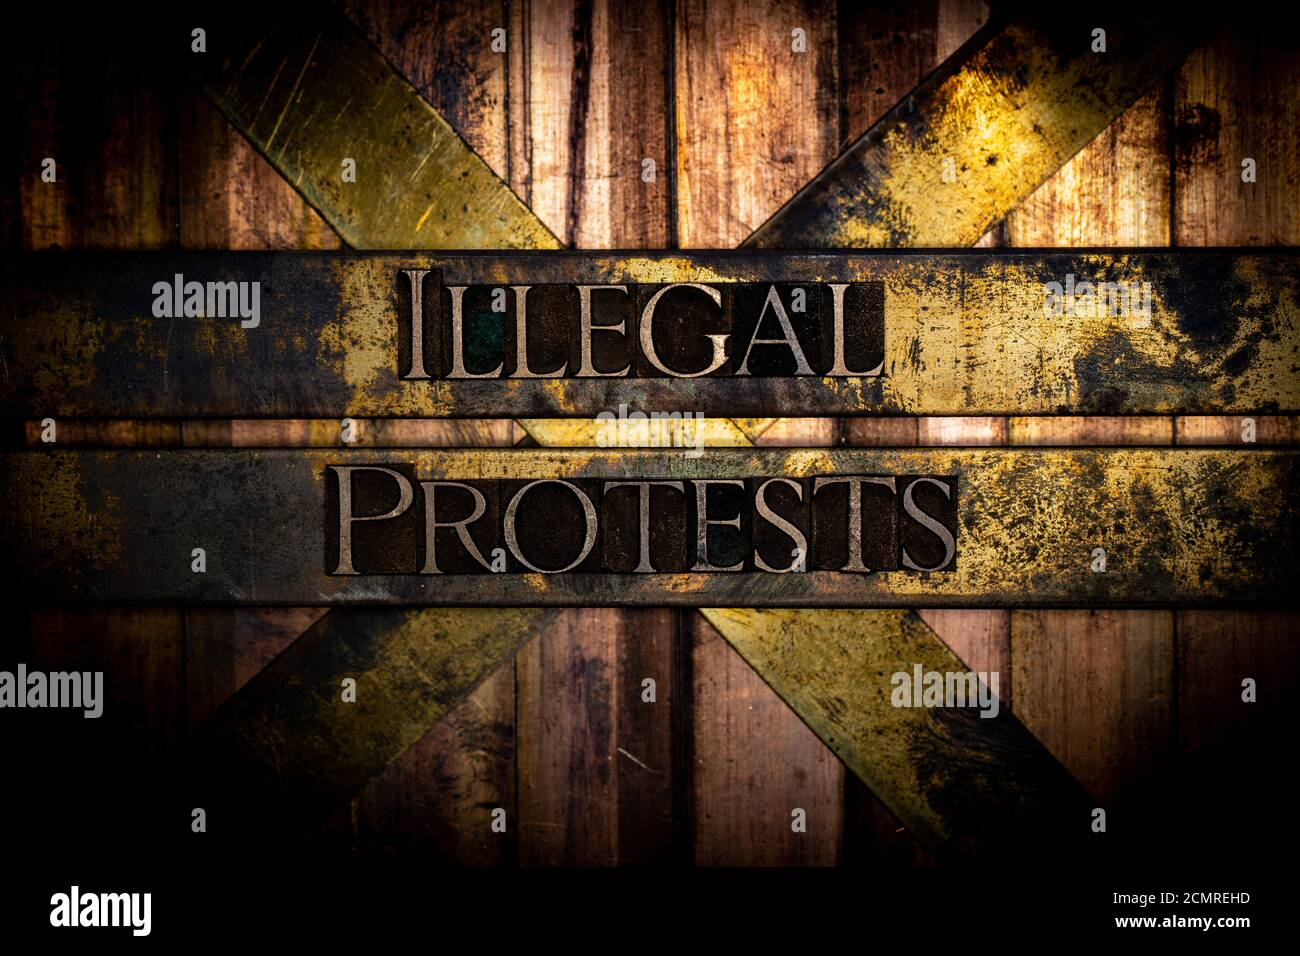 Illegal Protests text formed with real authentic typeset letters on vintage textured silver grunge copper and gold background Stock Photo